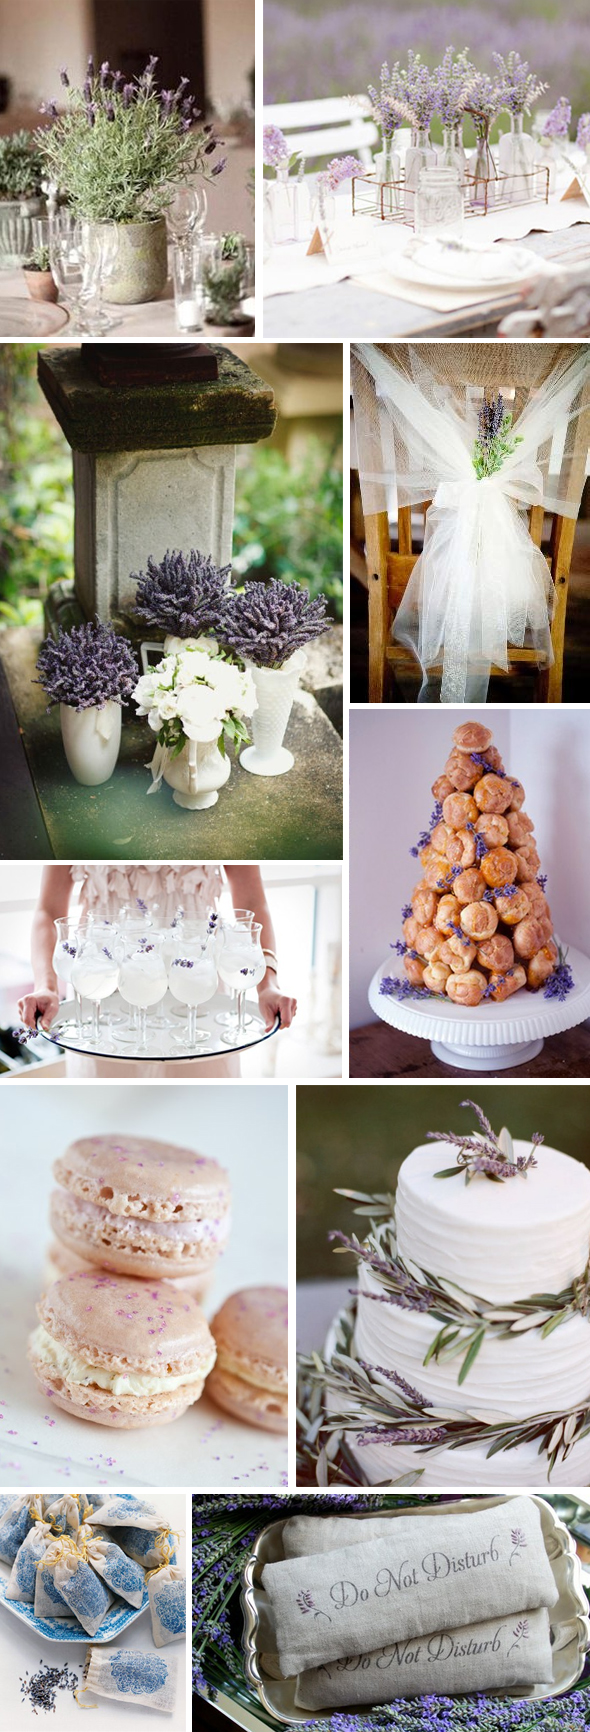 lavender wedding ideas Lavender Wedding Ideas